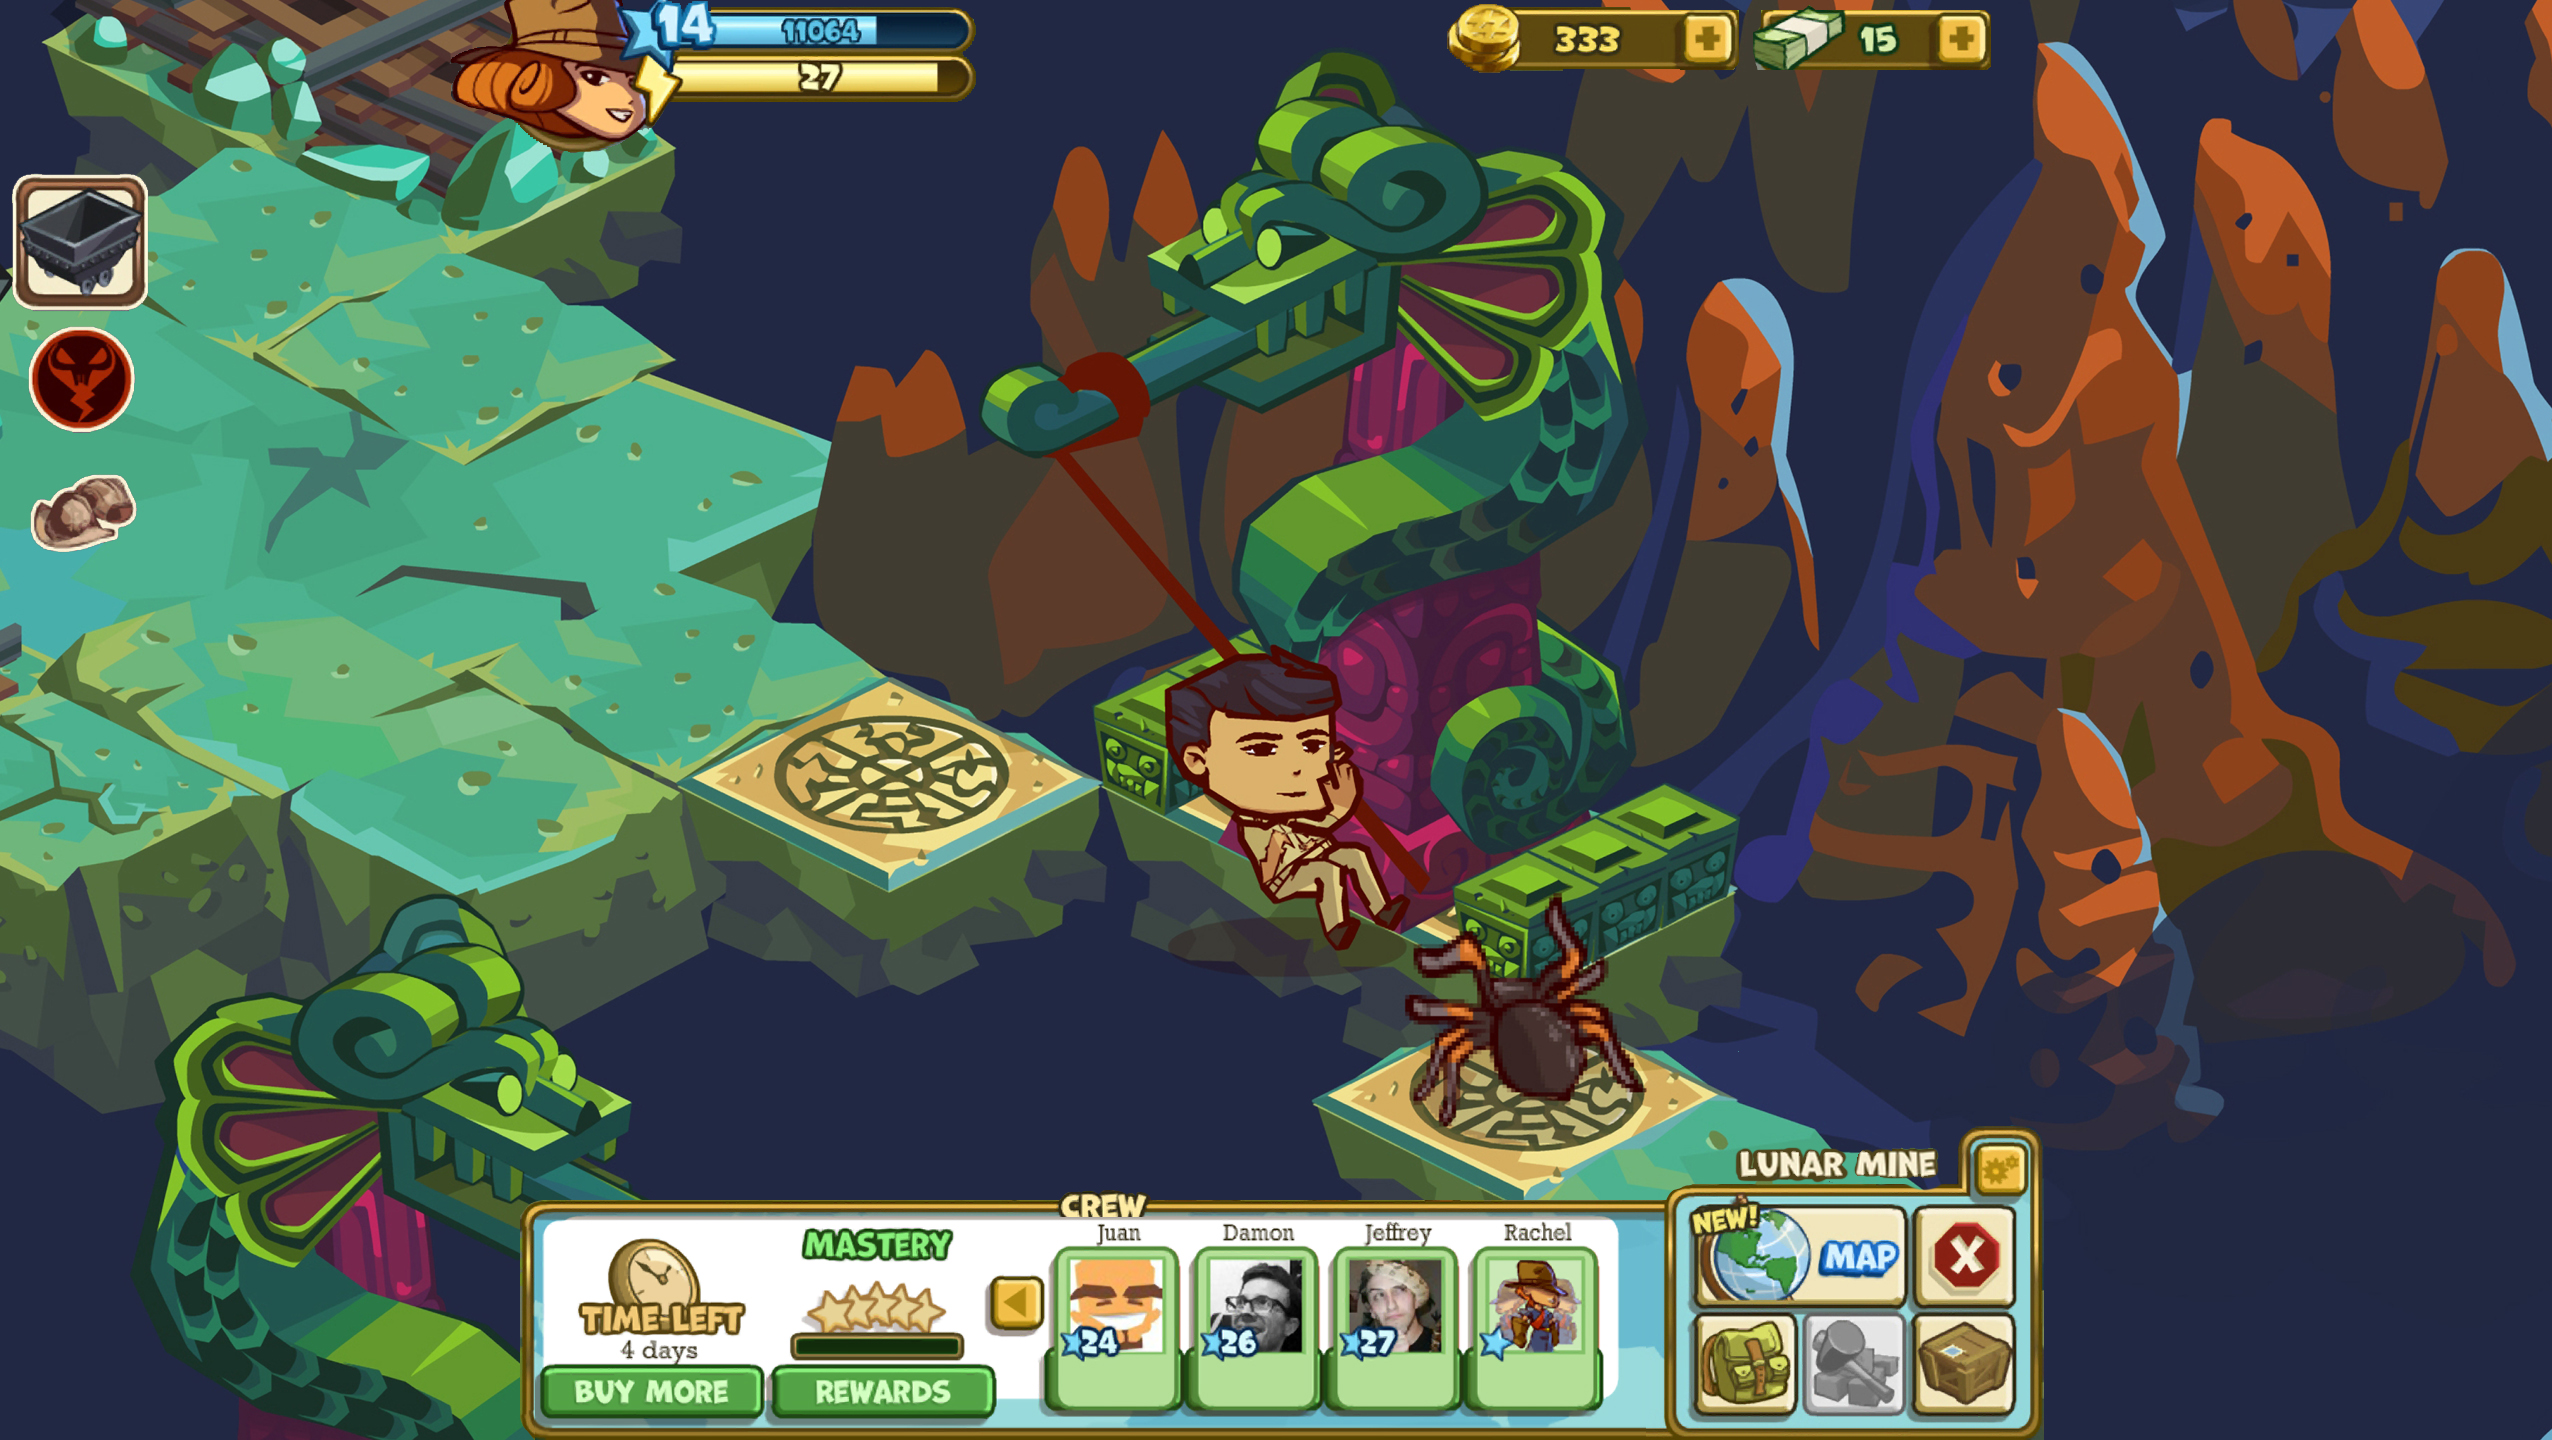 Indiana jones in adventure world available now in browsers near you lunarswing gumiabroncs Choice Image